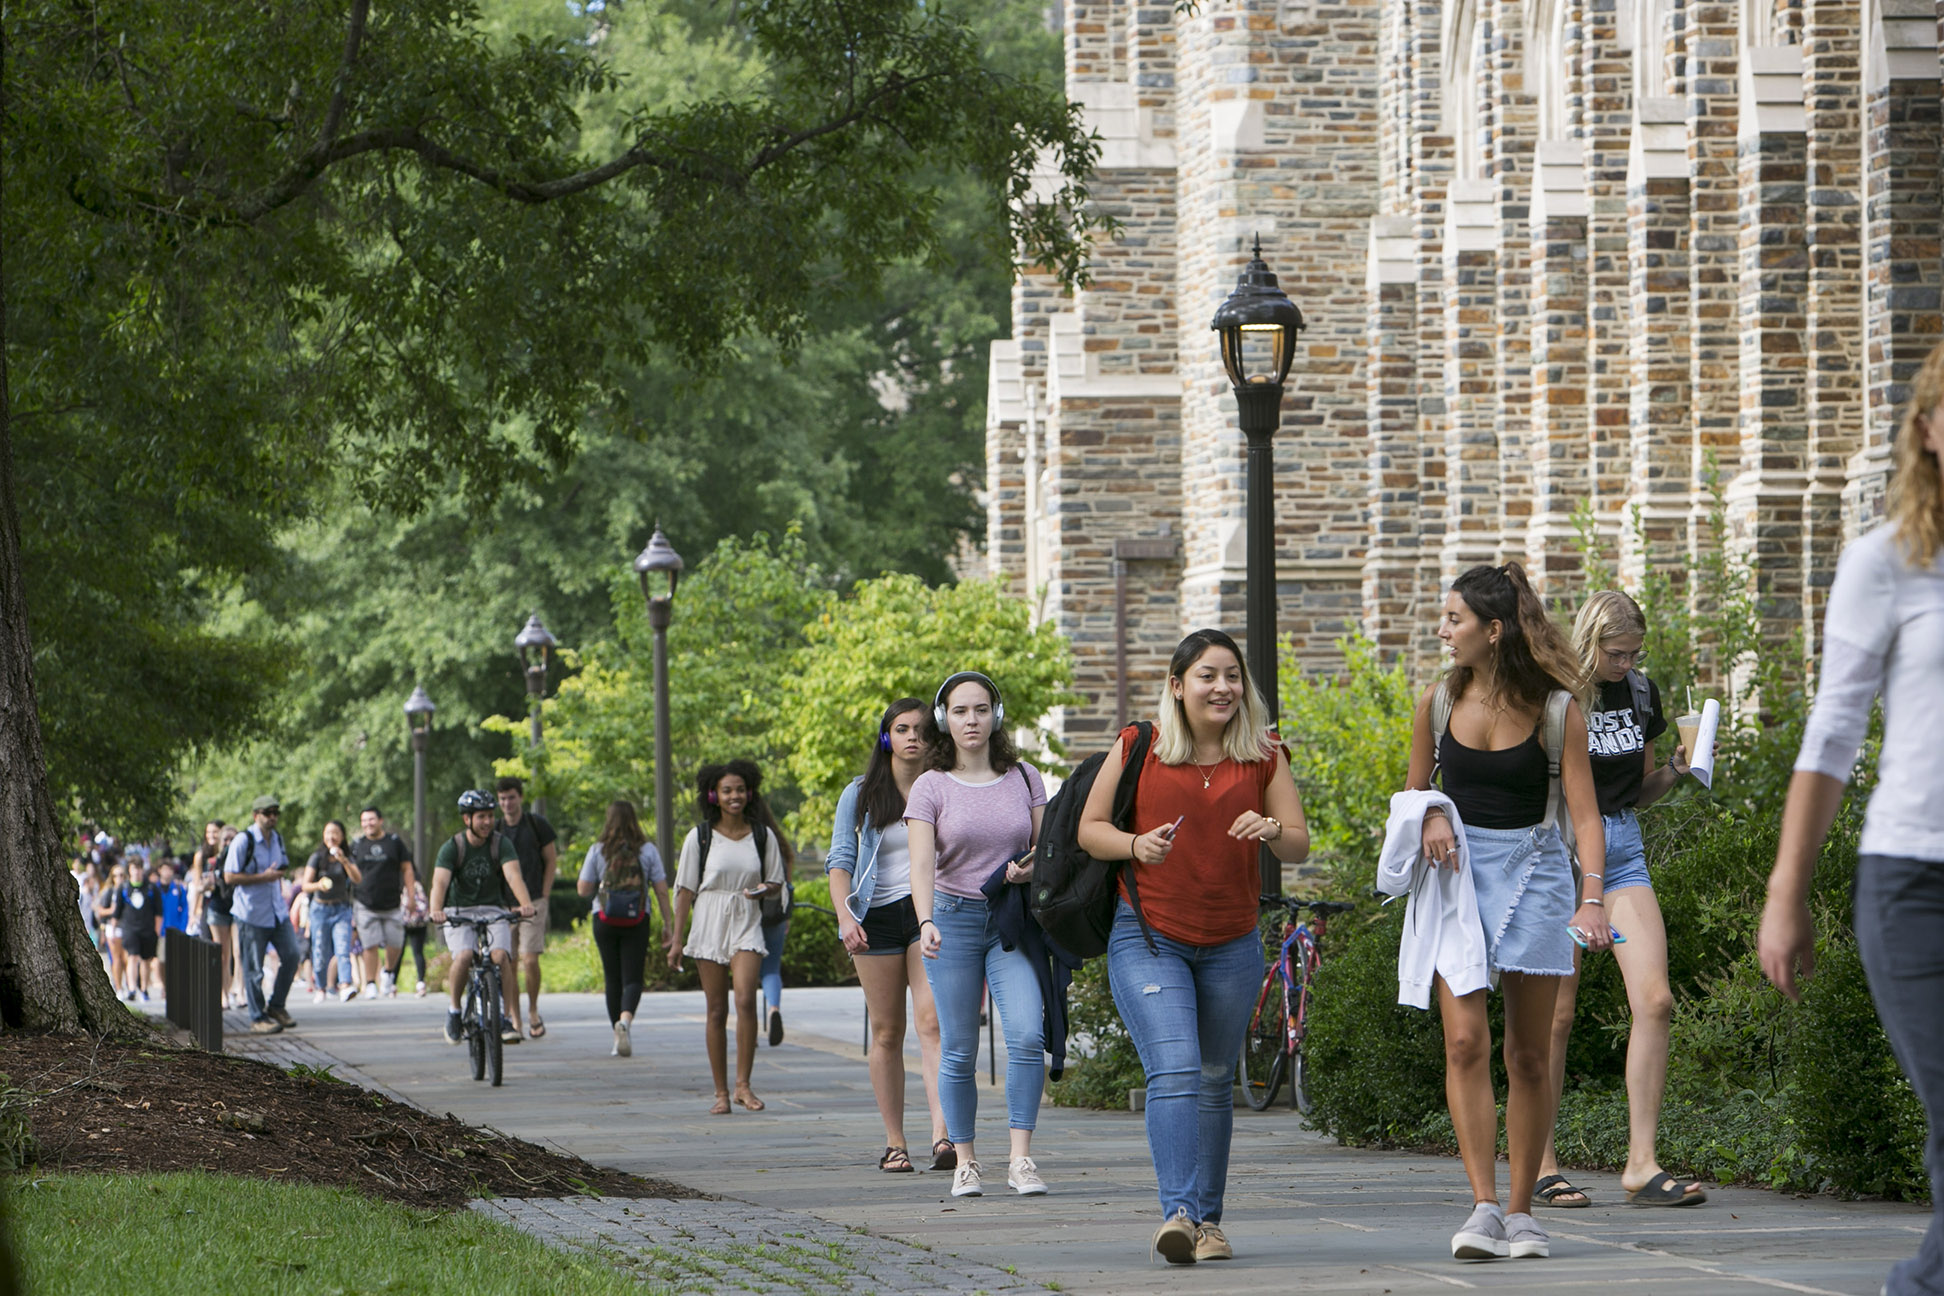 Students walk past Rubenstein Library during class change on the Abele Quad.